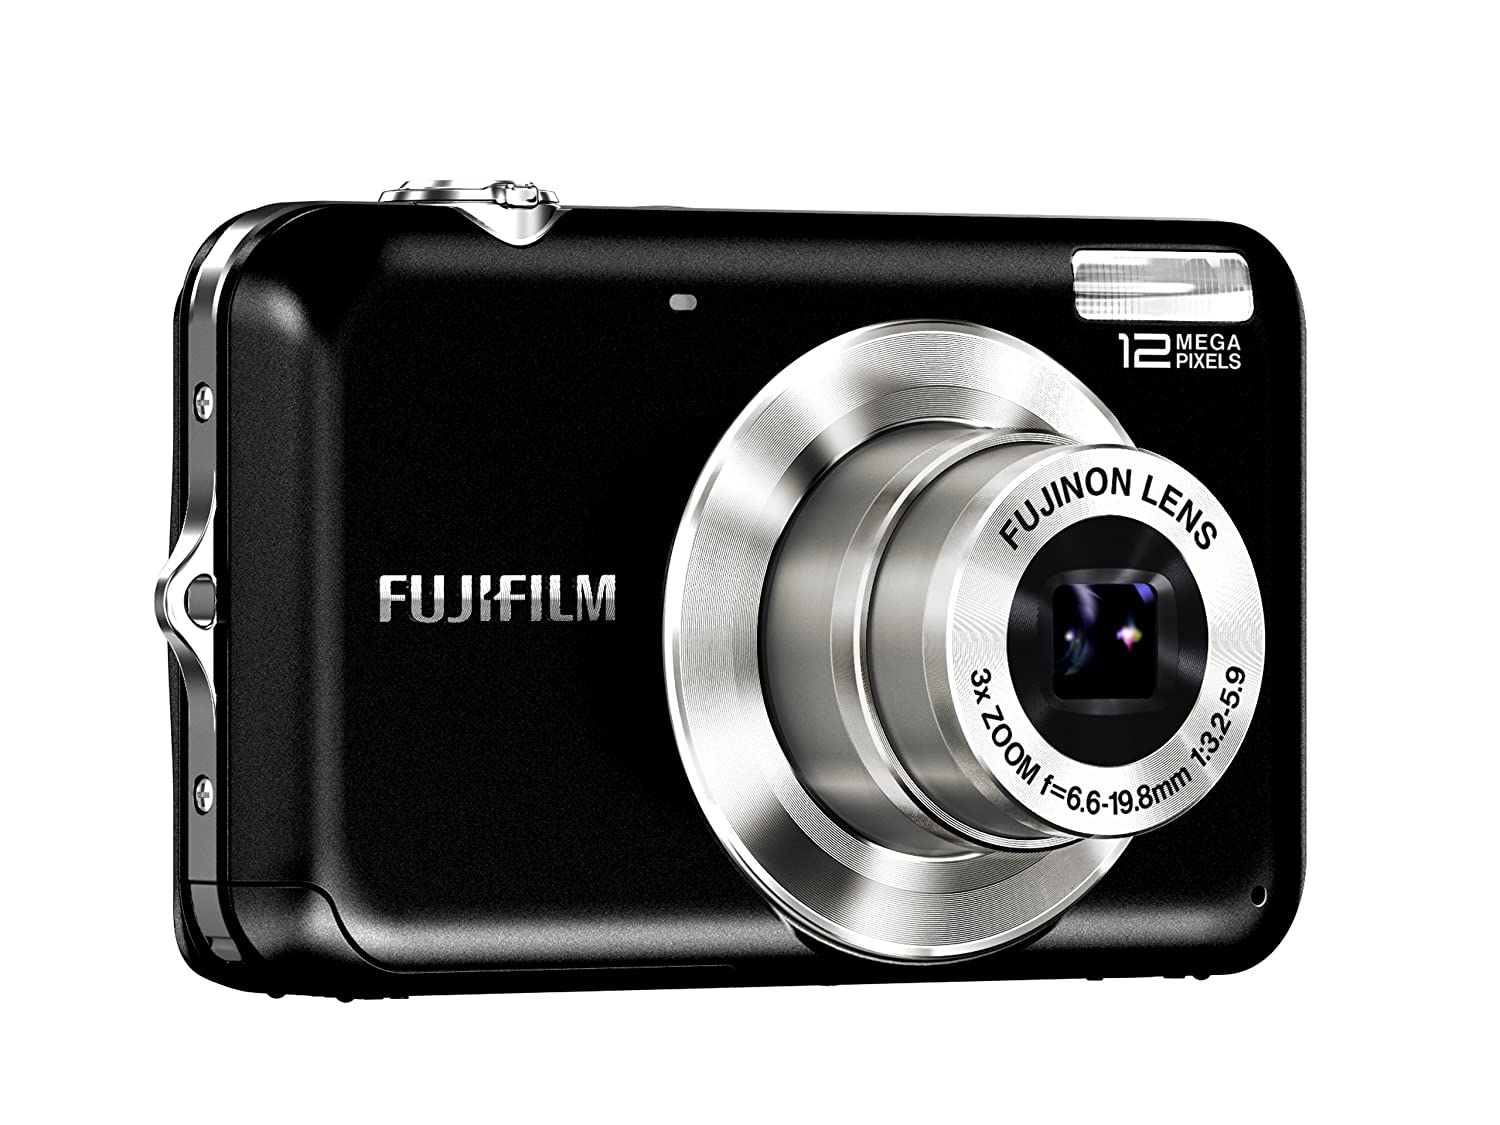 Amazon.com : Fujifilm FinePix JV100 12 MP Digital Camera with 3x Optical  Zoom and 2.7inch LCD (Black) : Point And Shoot Digital Cameras : Camera &  Photo